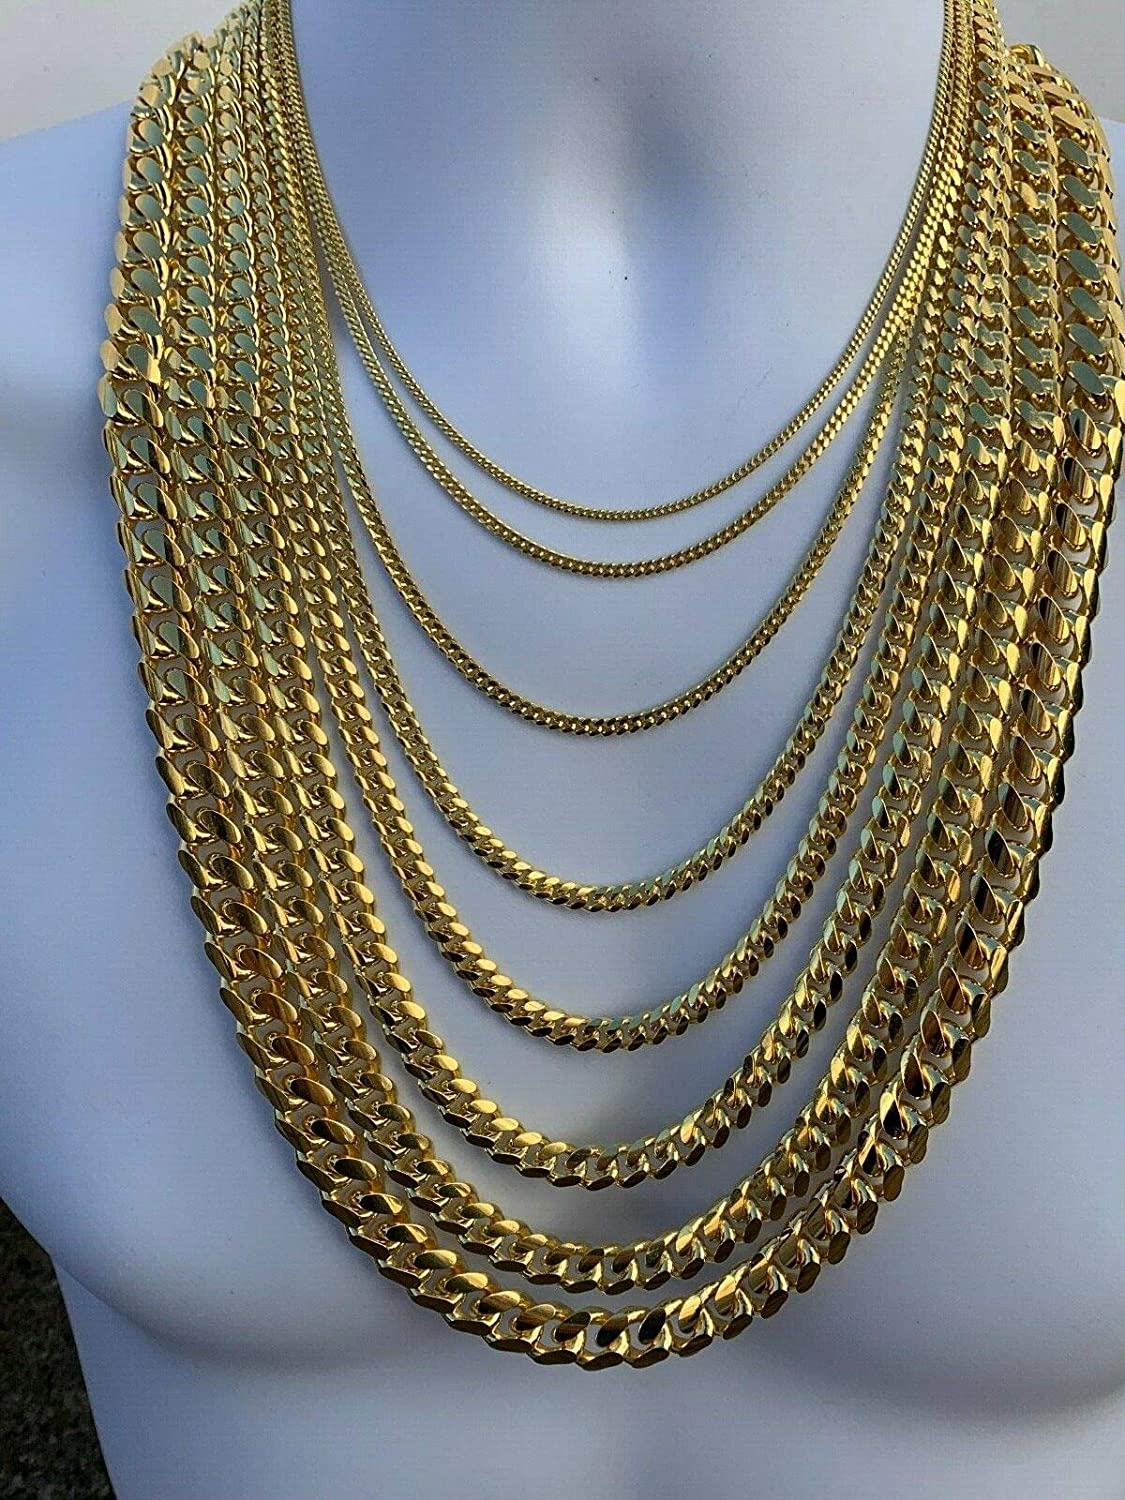 14k Gold Plated Solid 925 Sterling Silver Miami Cuban Link Chain 2-12mm 18-30- Great Mens Or Ladies Heavy Necklace for Pendants Italy Made